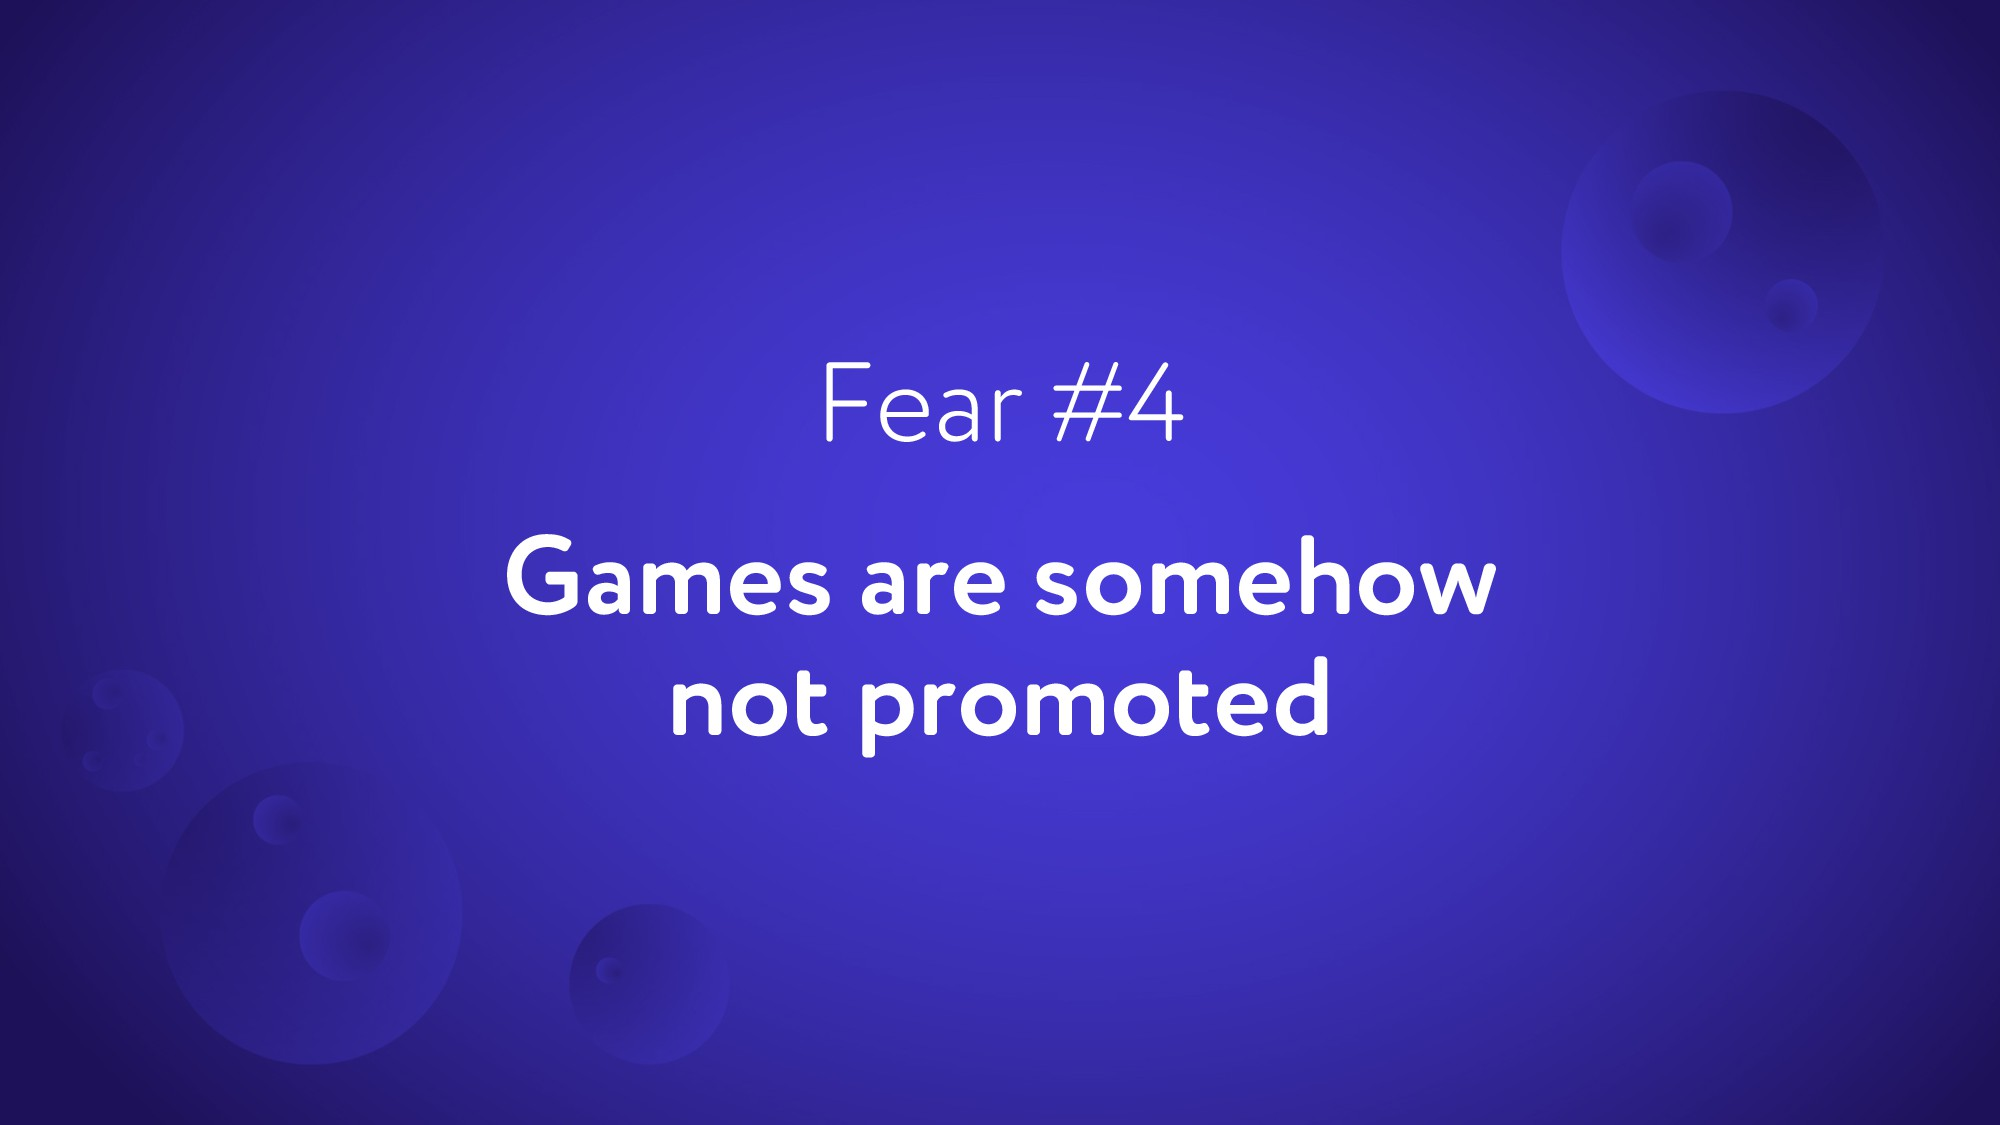 Games are somehow not promoted Fear #4